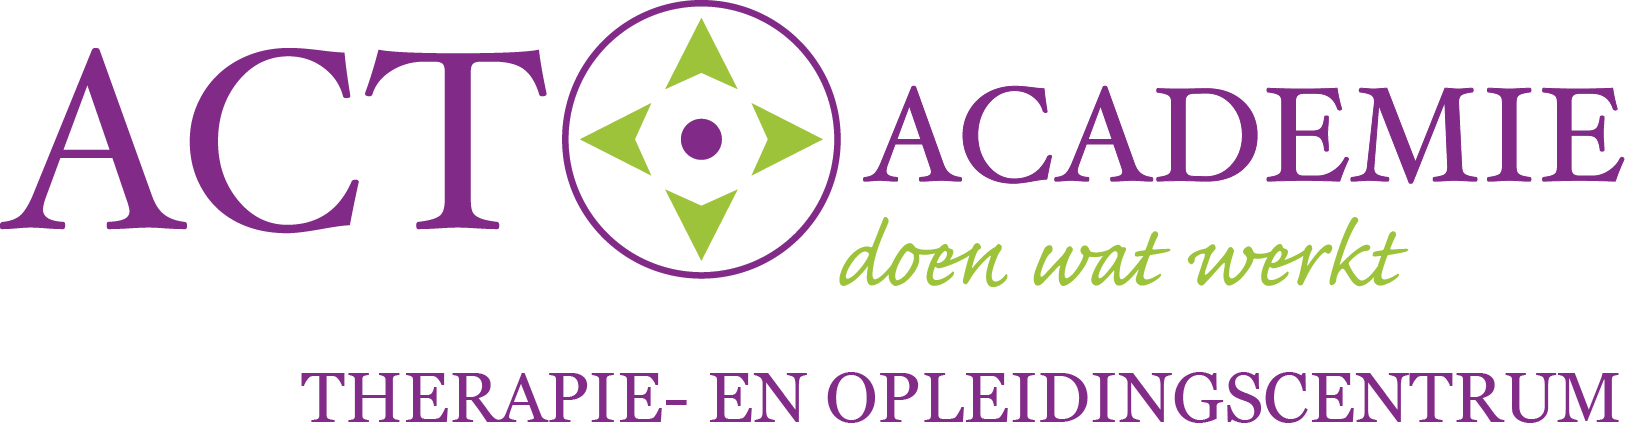 logo met slagzin: 'opleidings- en therapiecentrum'